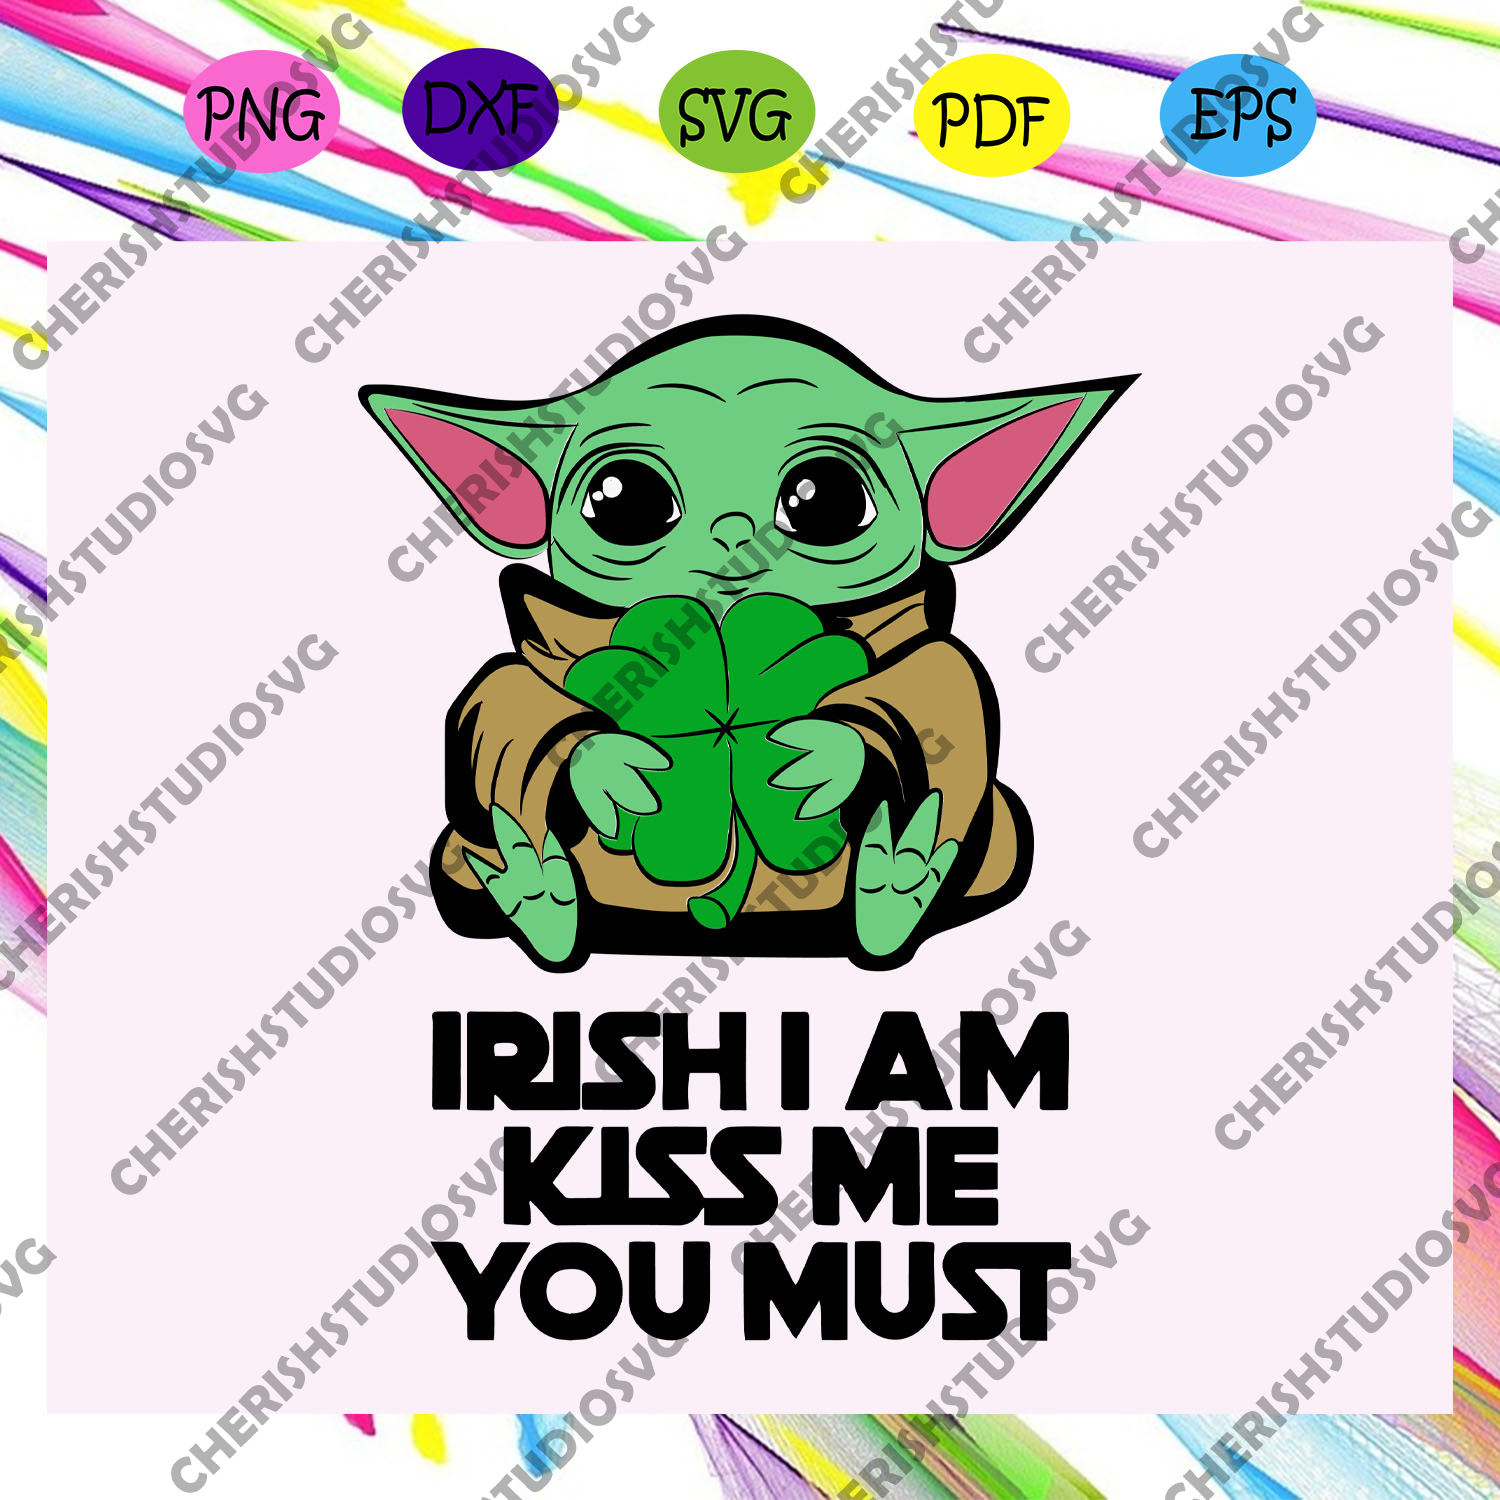 Baby Yoda svg bundle, baby Yoda , Yoda svg, Yoda , baby Yoda gift, baby Yoda shirt, mandalorian bundle, For Silhouette, Files For Cricut, SVG, DXF, EPS, PNG Instant Download